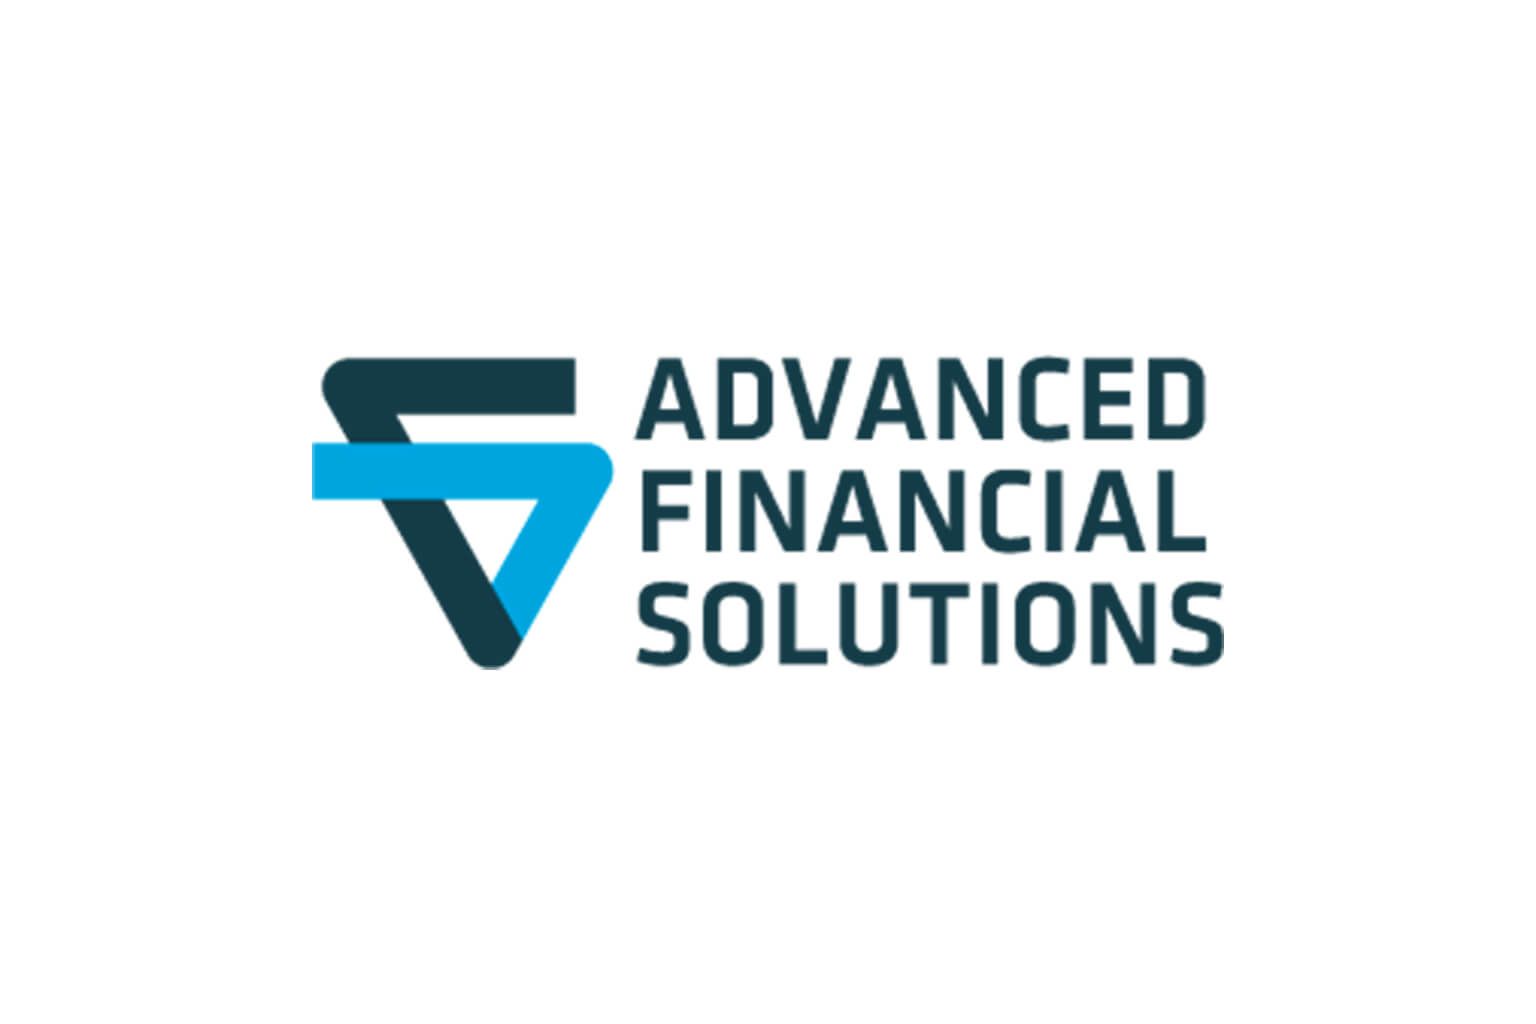 Advanced Financial Solutions